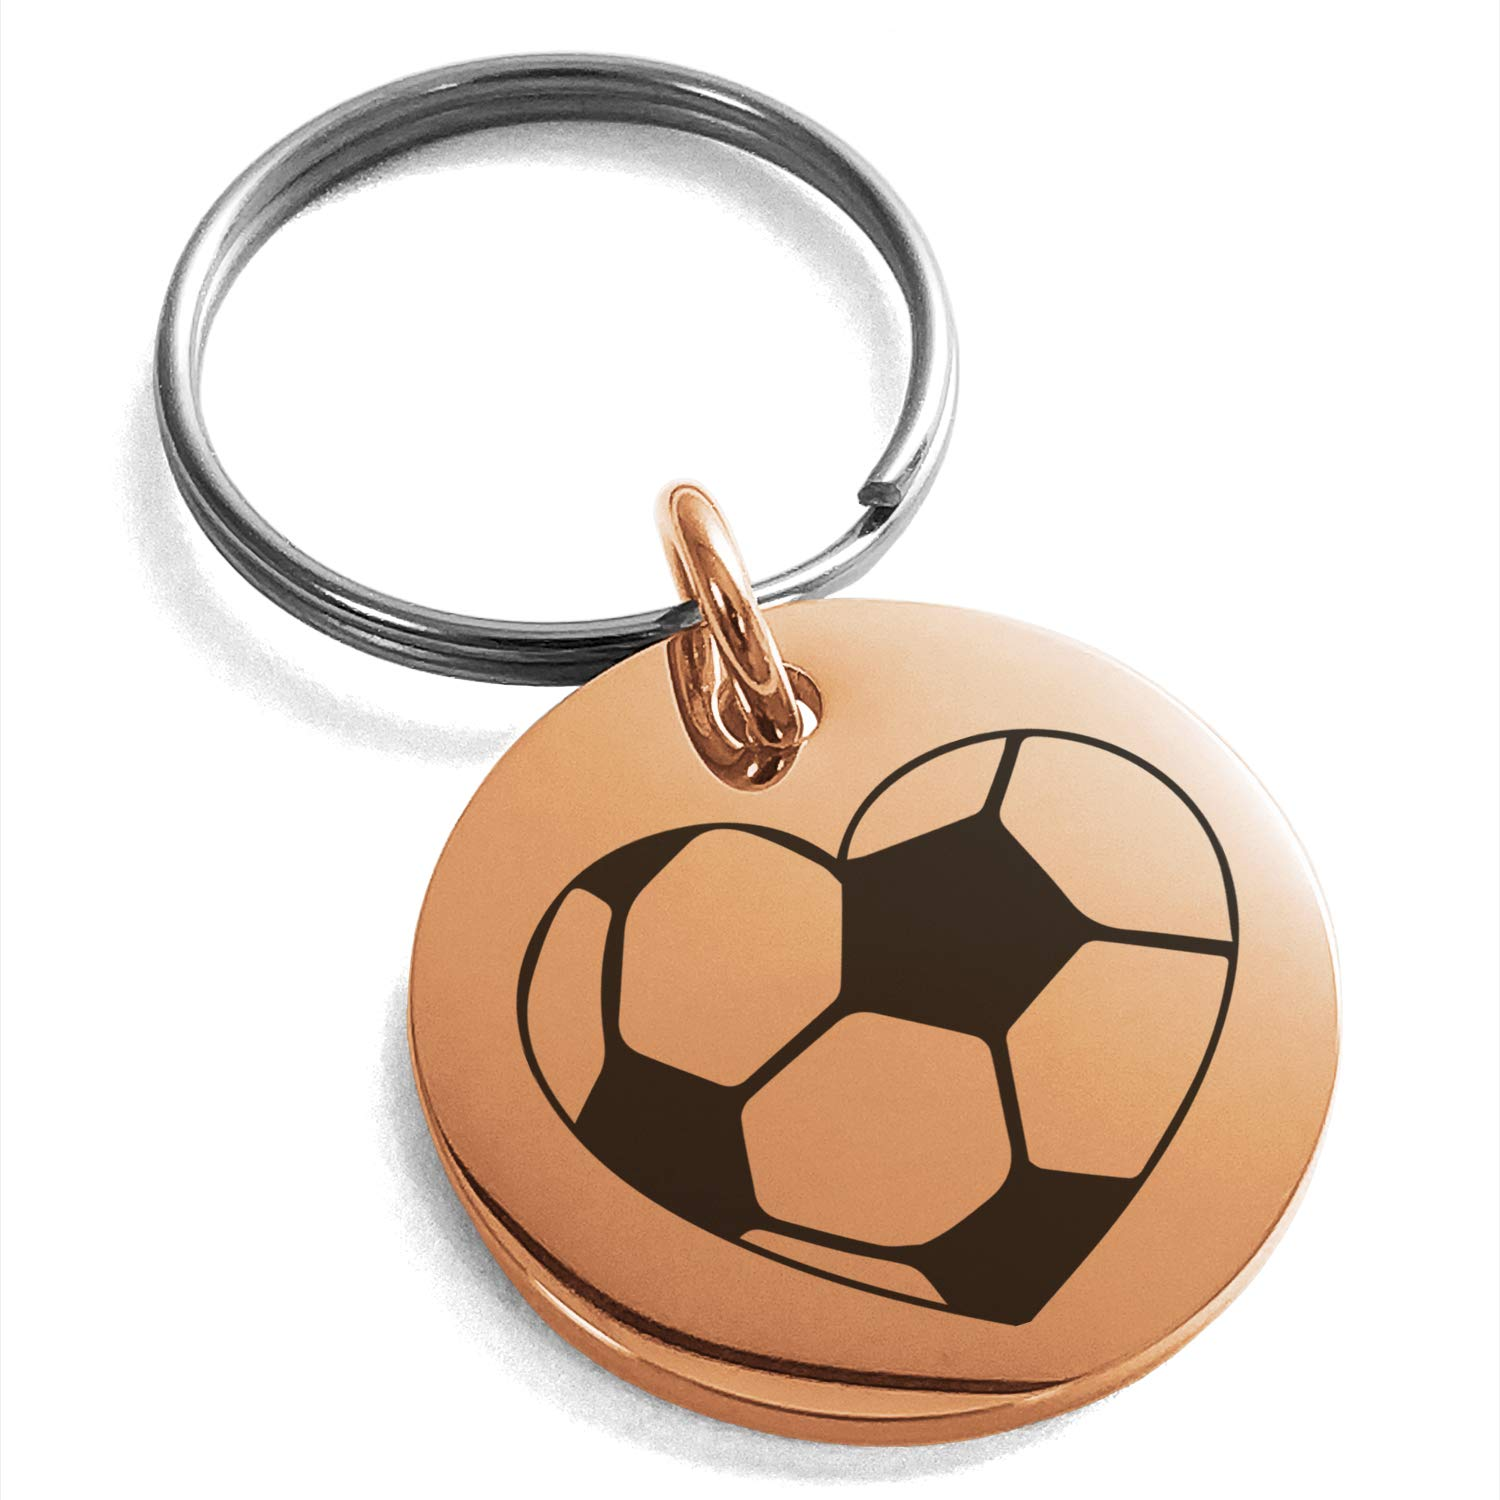 Tioneer Rose Gold Plated Stainless Steel Love Soccer Heart Engraved Small Medallion Circle Charm Keychain Keyring